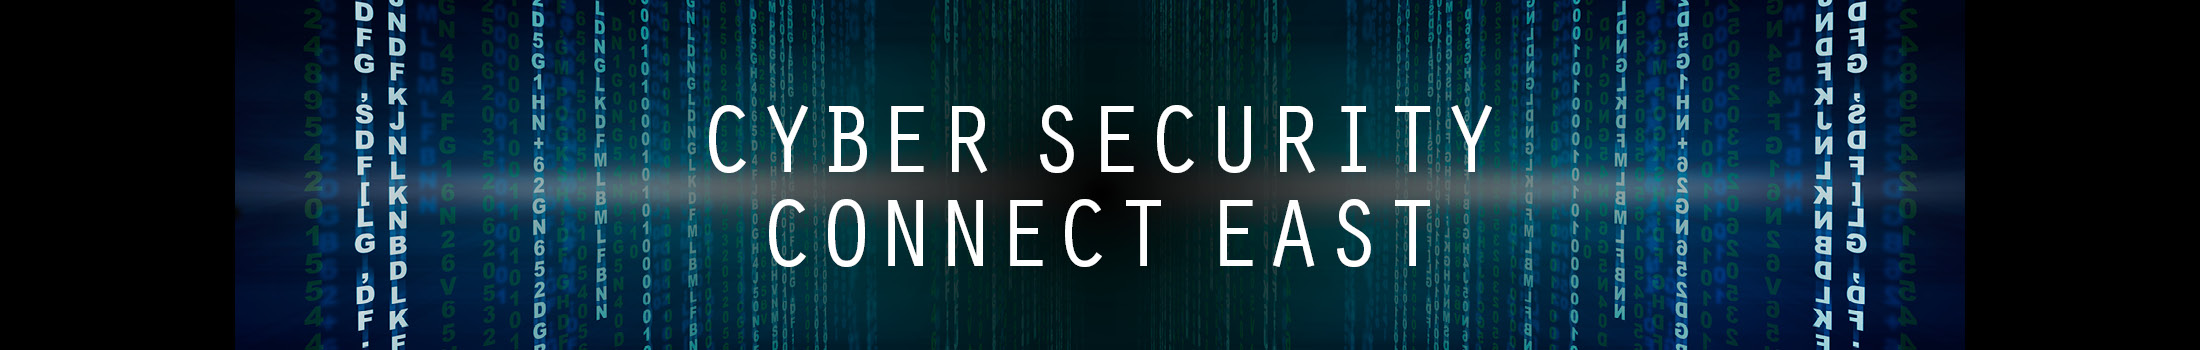 Cyber Security Connect East